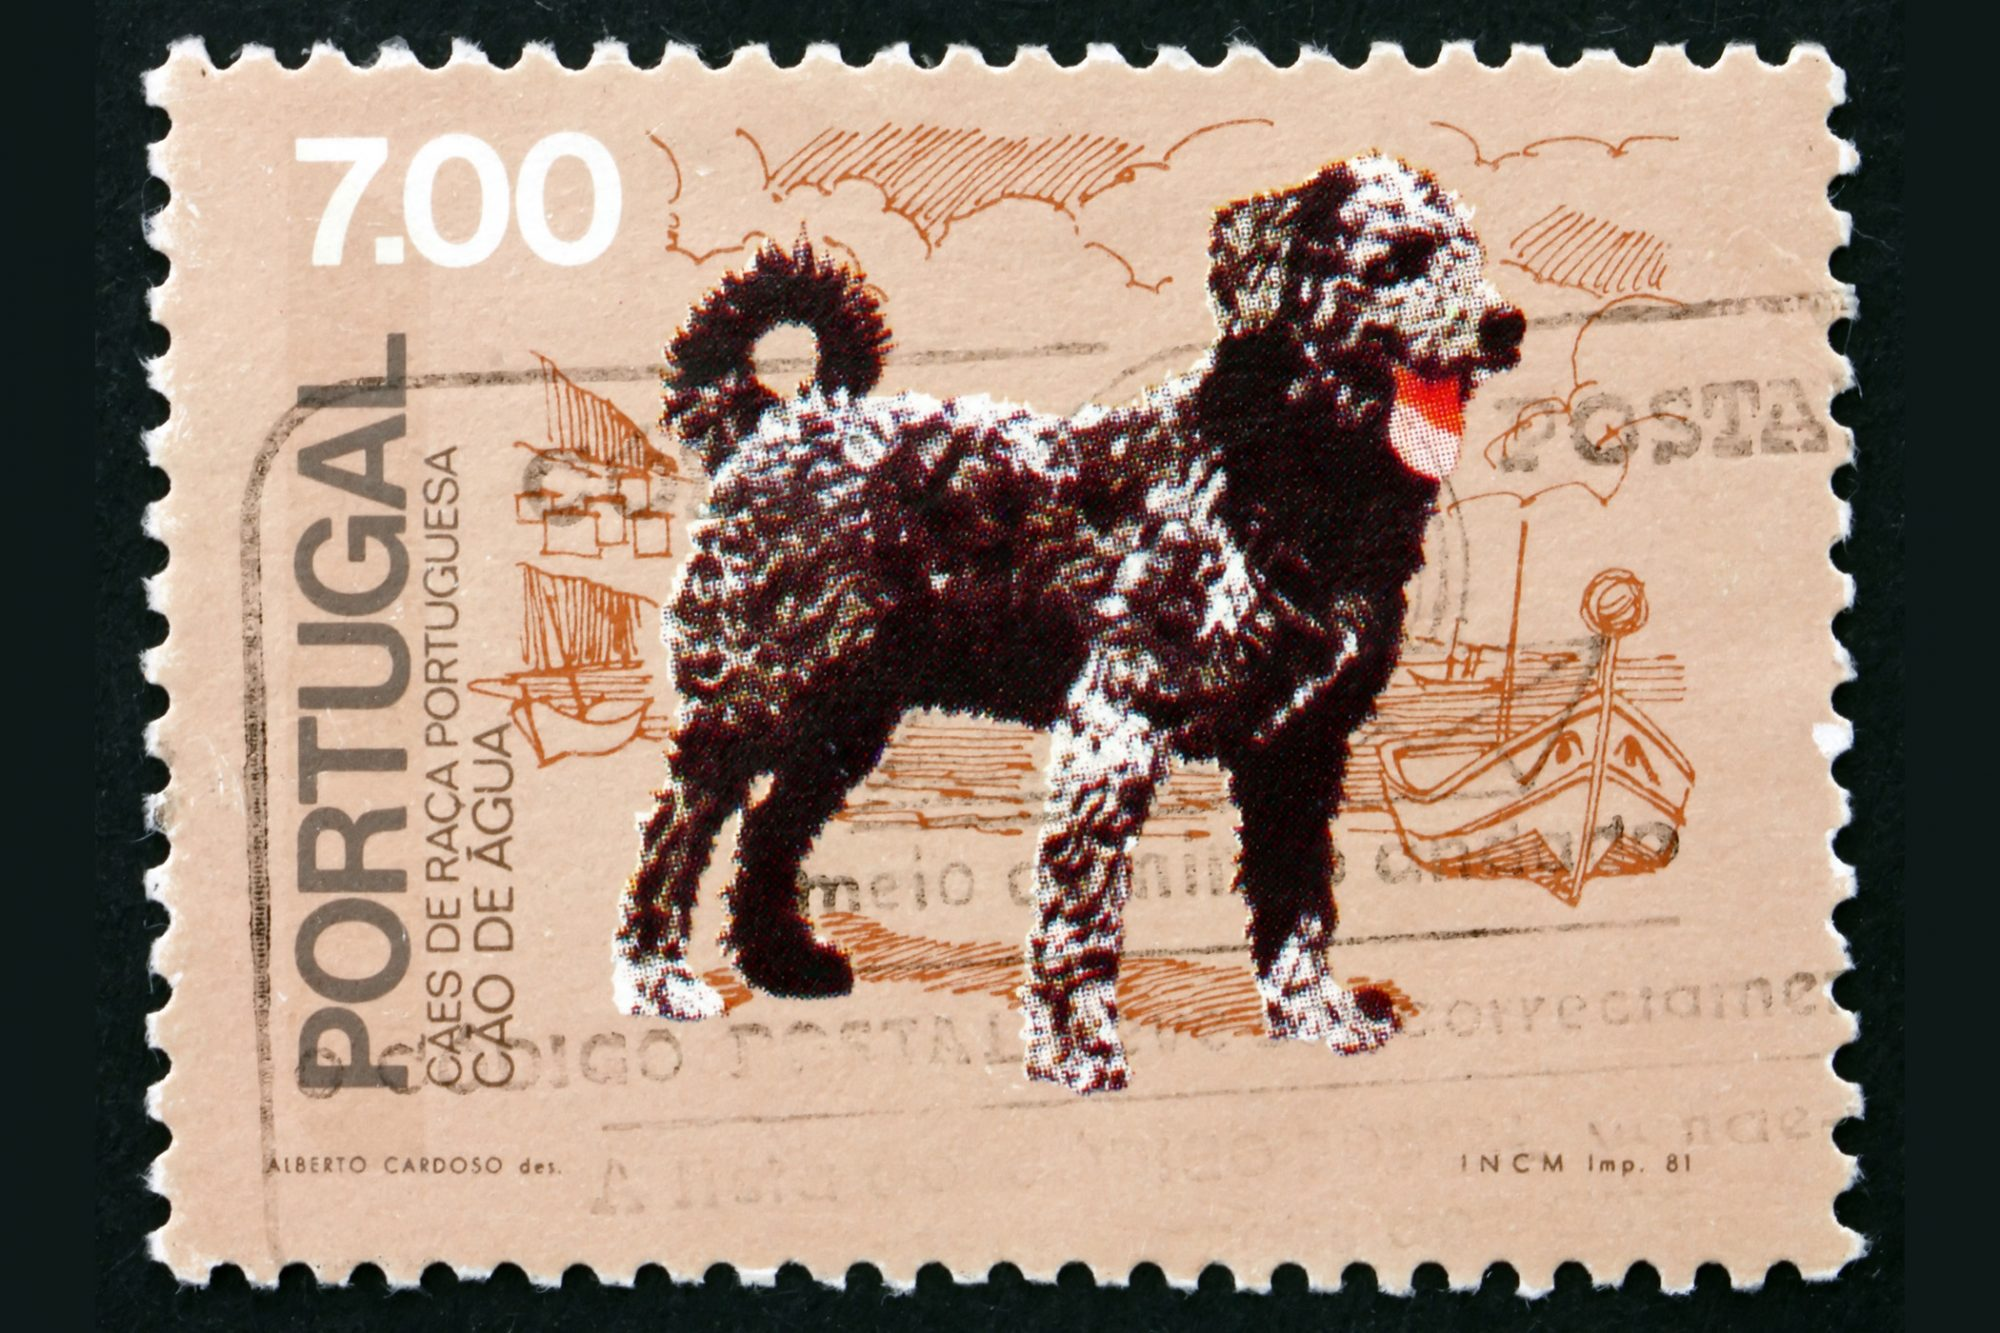 Portuguese Water Dog postage stamp from 1981